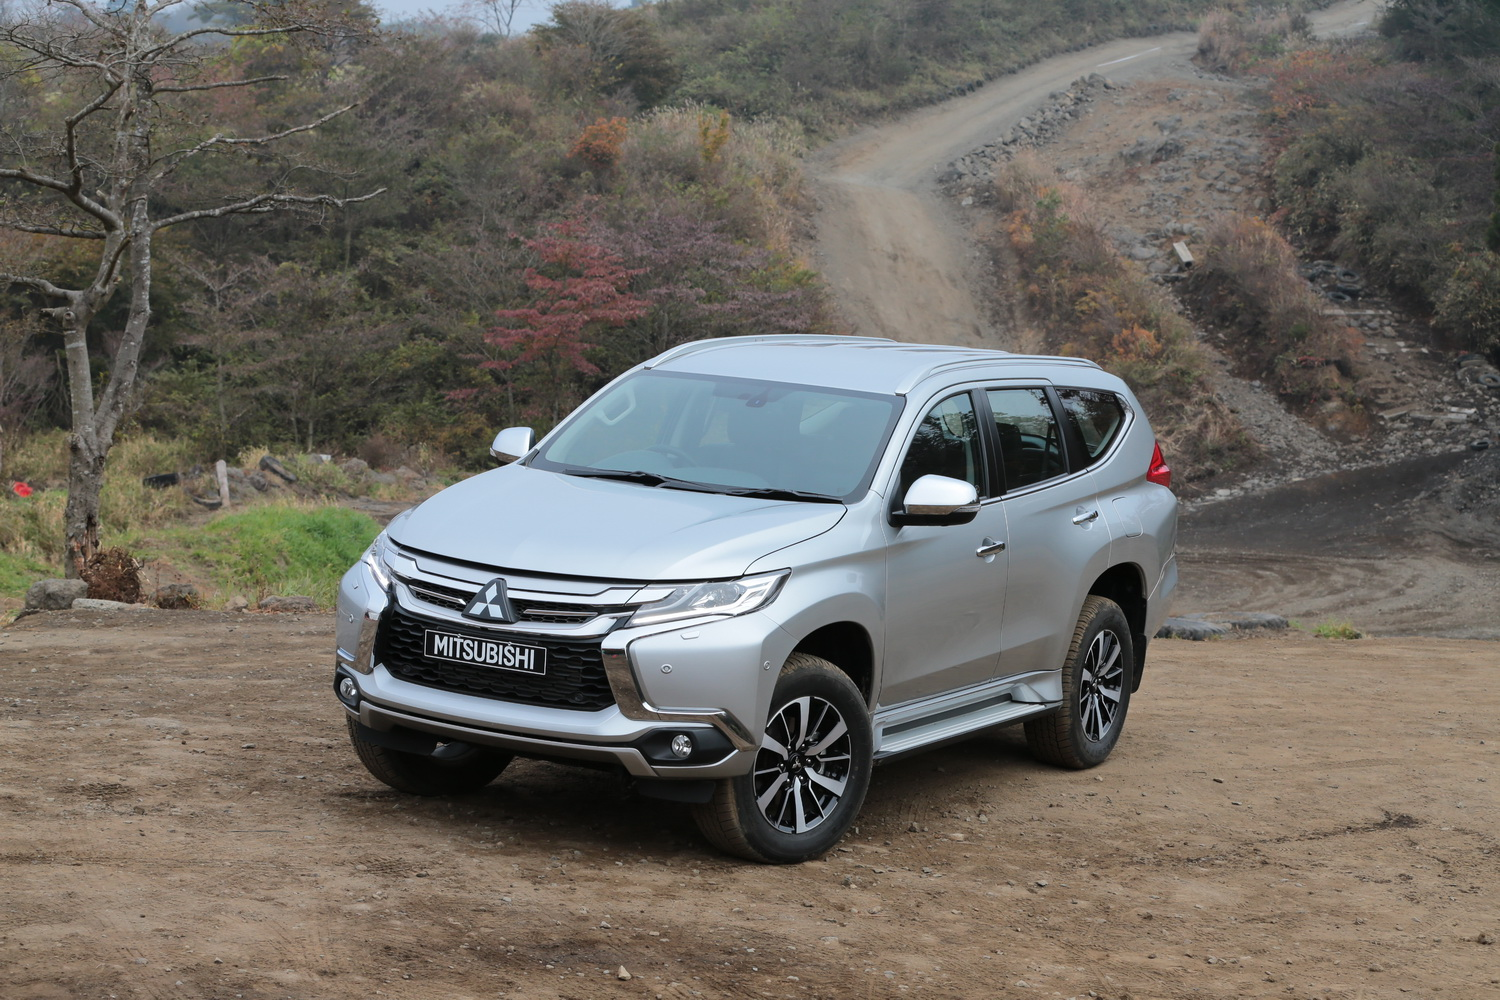 2016 mitsubishi pajero sport review first drive. Black Bedroom Furniture Sets. Home Design Ideas